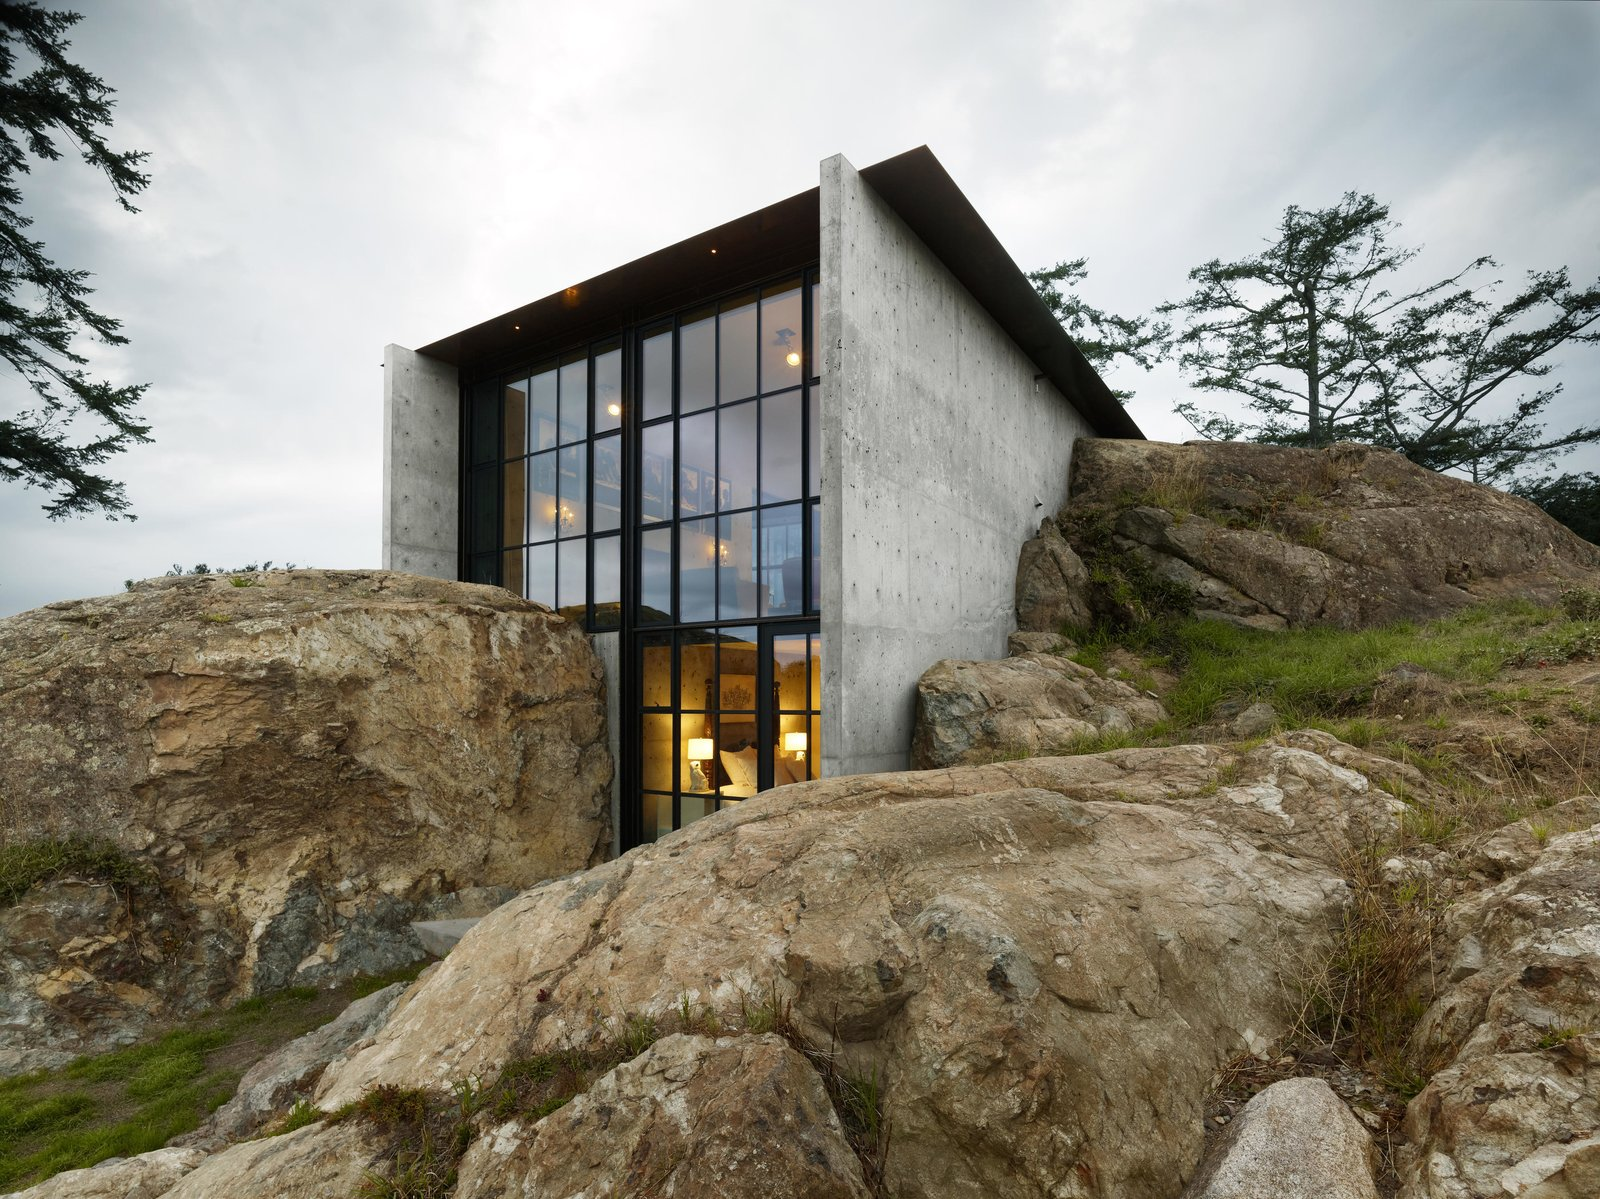 The Pierre | Olson Kundig Tagged: Boulders, Slope, Exterior, House, and Concrete Siding Material.  The Pierre by Olson Kundig